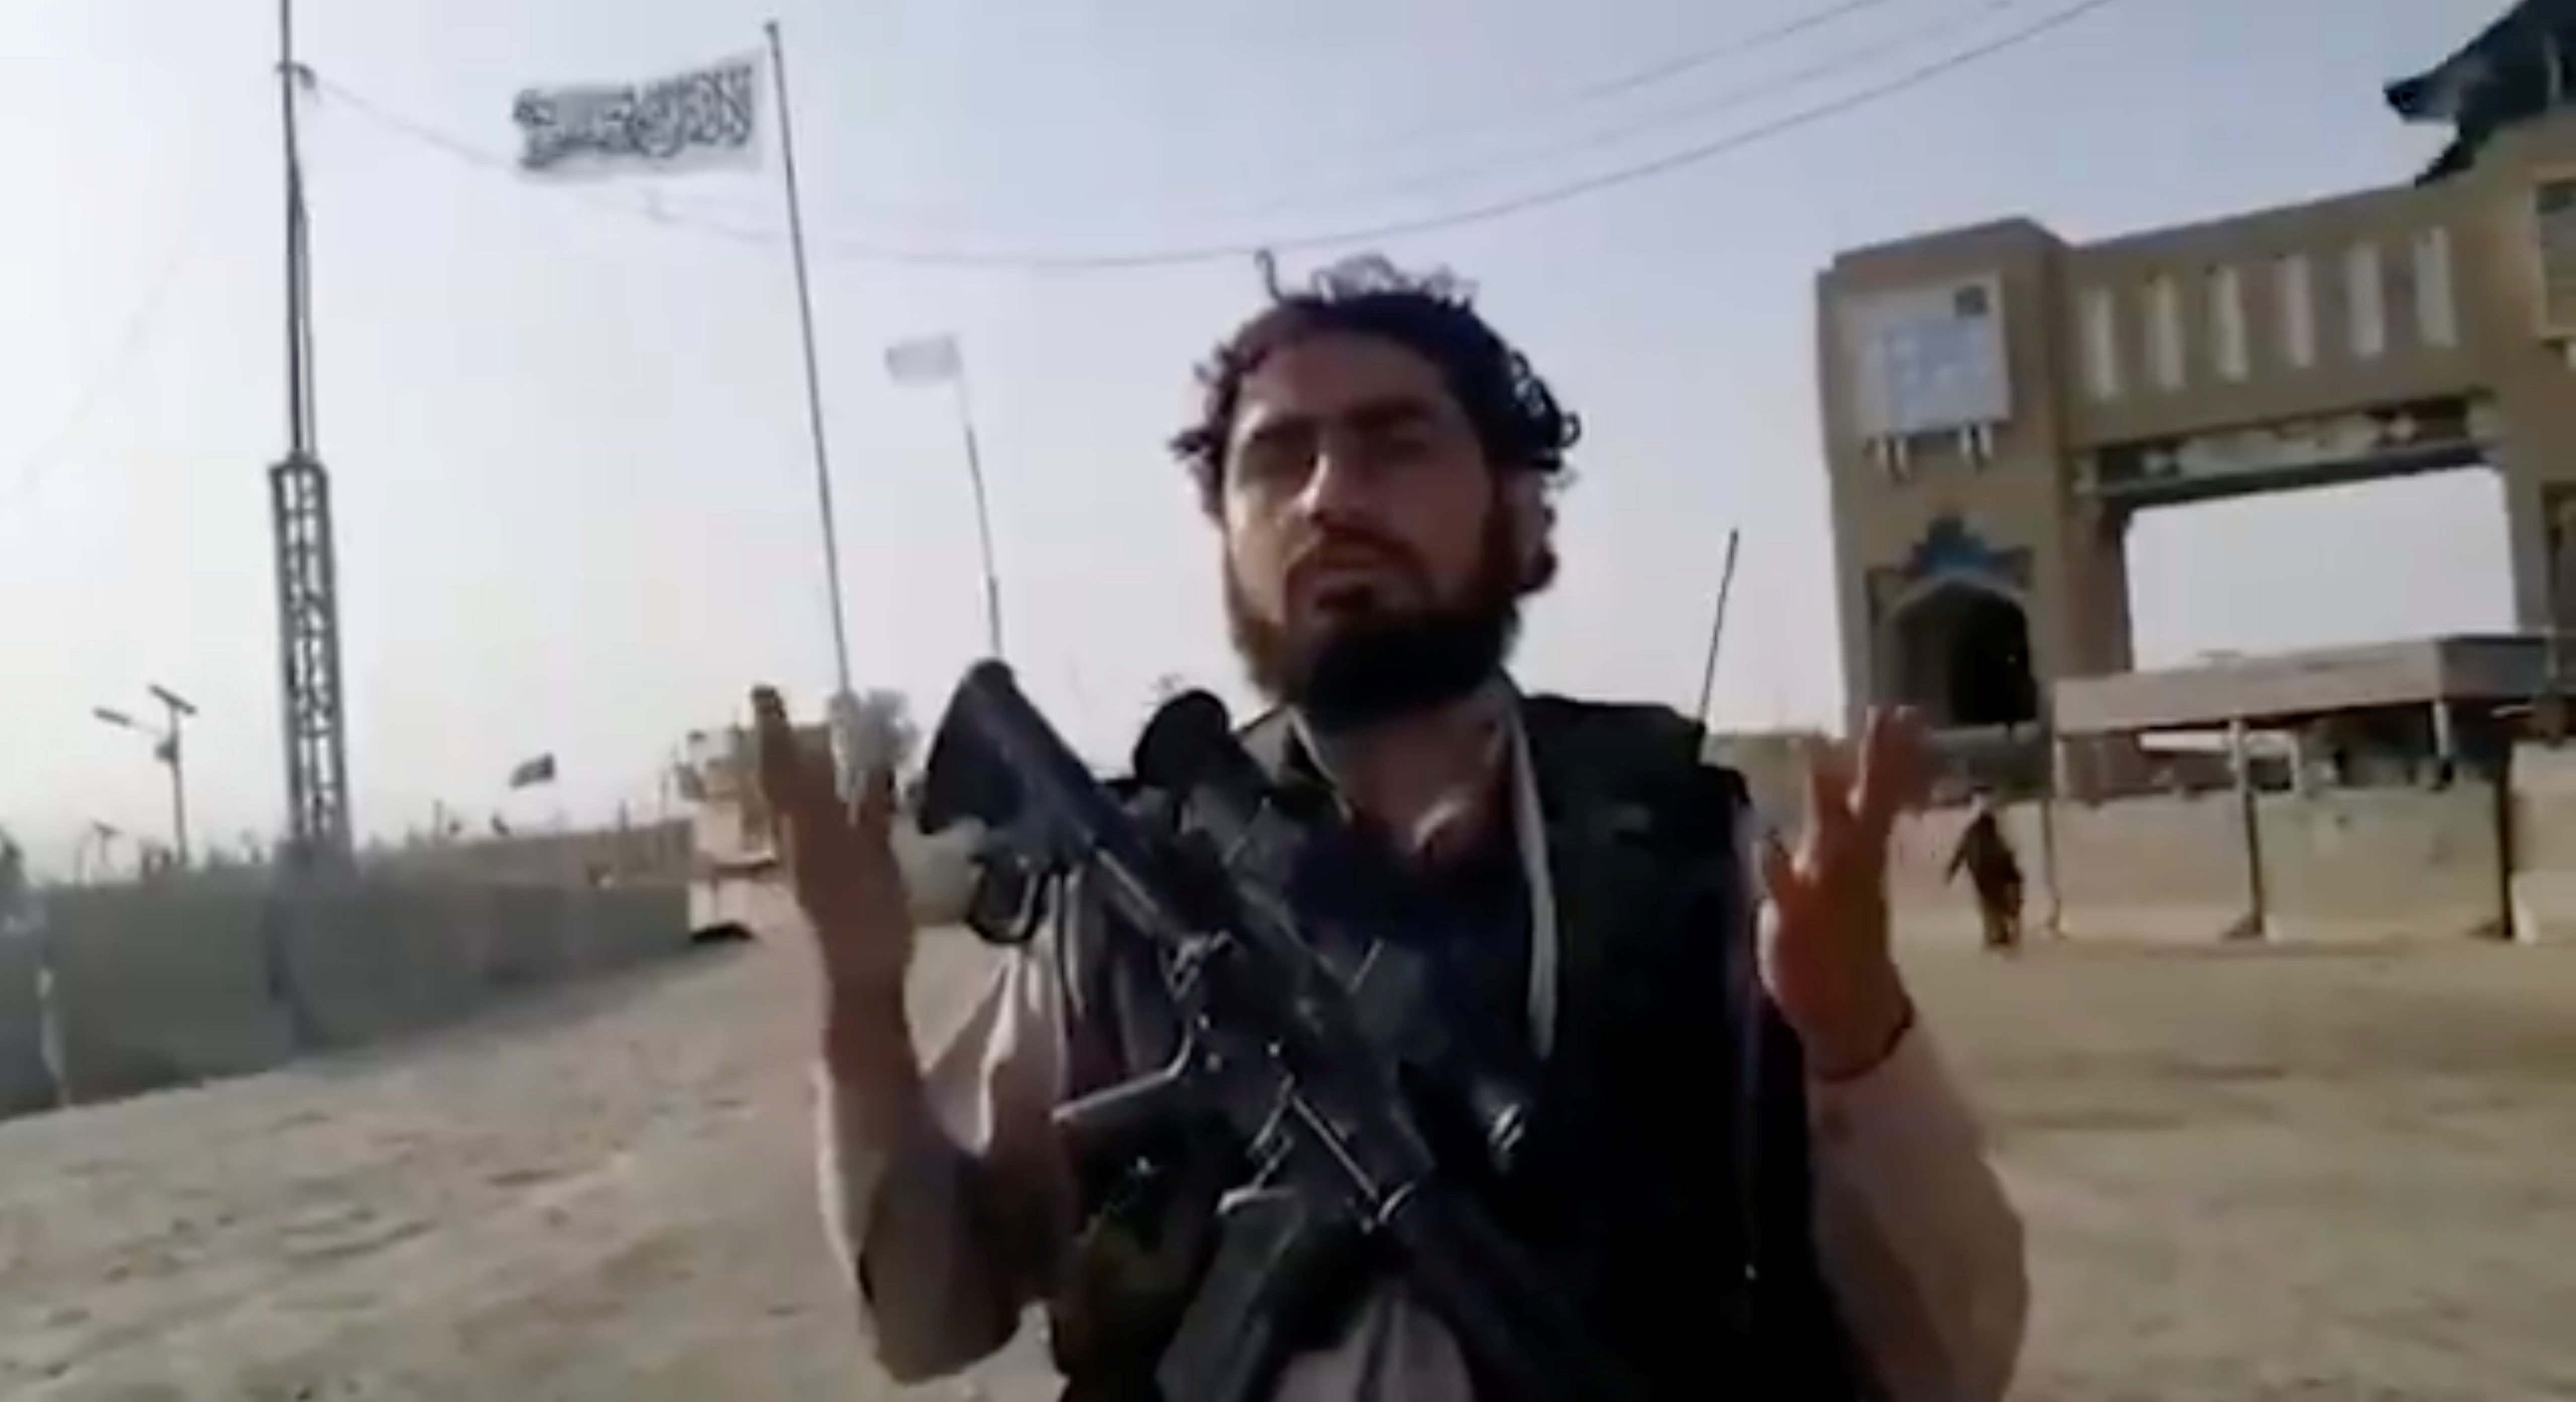 A man holding a gun speaks as an Islamic Emirate of Afghanistan flag flutters in front of the friendship gate of Afghanistan and Pakistan at the Wesh-Chaman border crossing, Spin Boldak, Afghanistan July 14, 2021, in this screen grab obtained from a video. TALIBAN HANDOUT via REUTERS